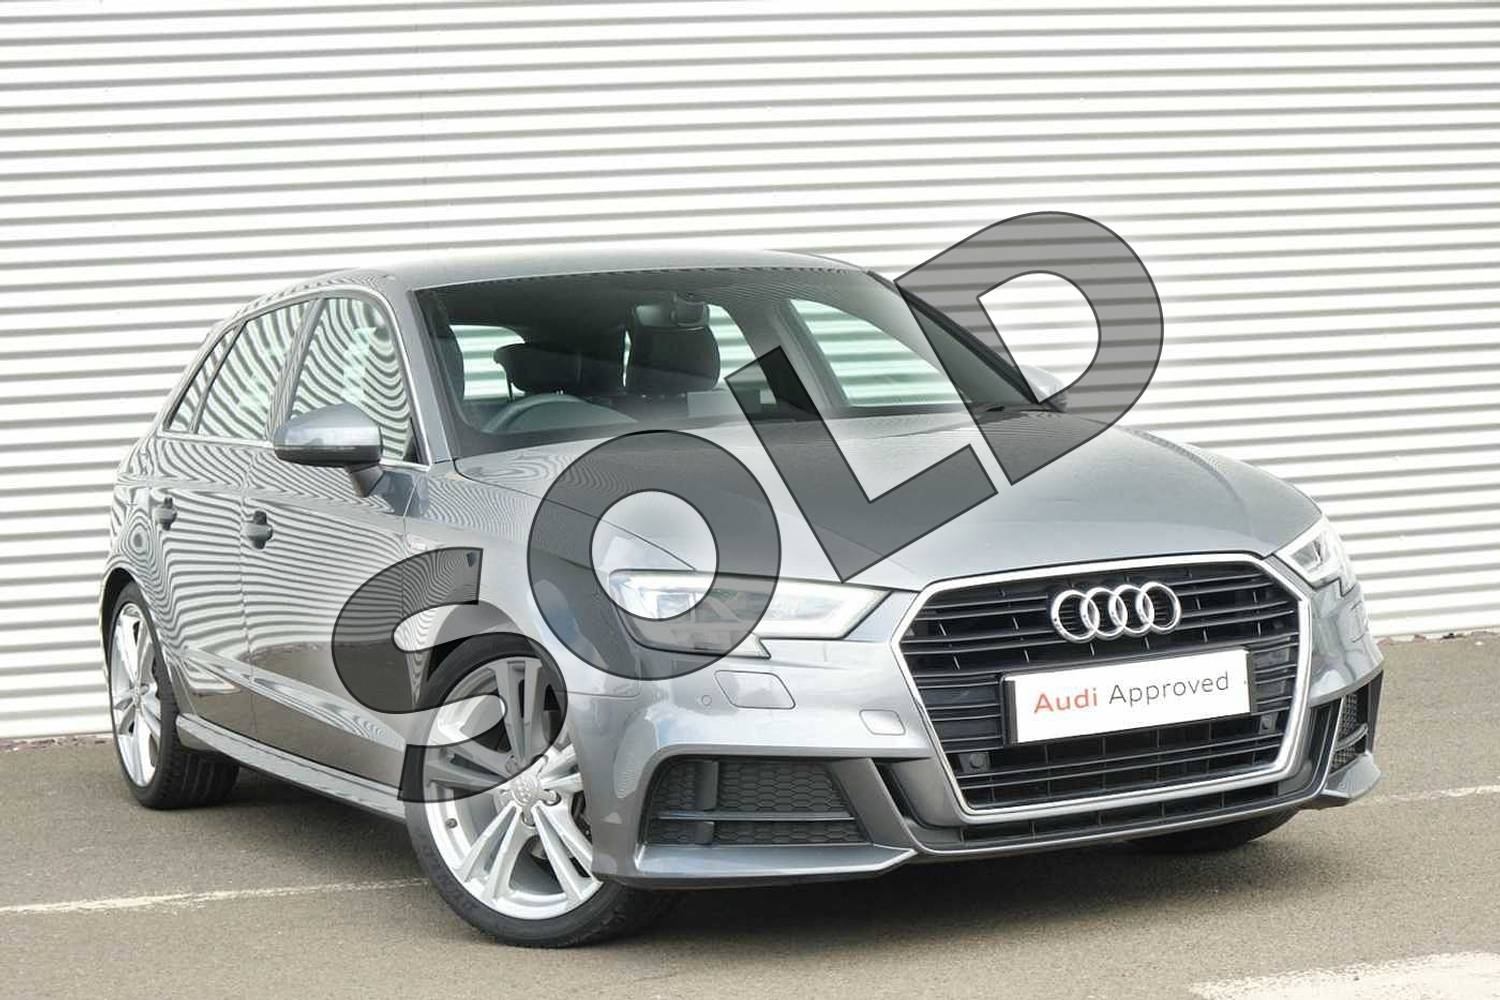 2017 Audi A3 Sportback 1.4 TFSI S Line 5dr S Tronic in Monsoon Grey Metallic at Coventry Audi